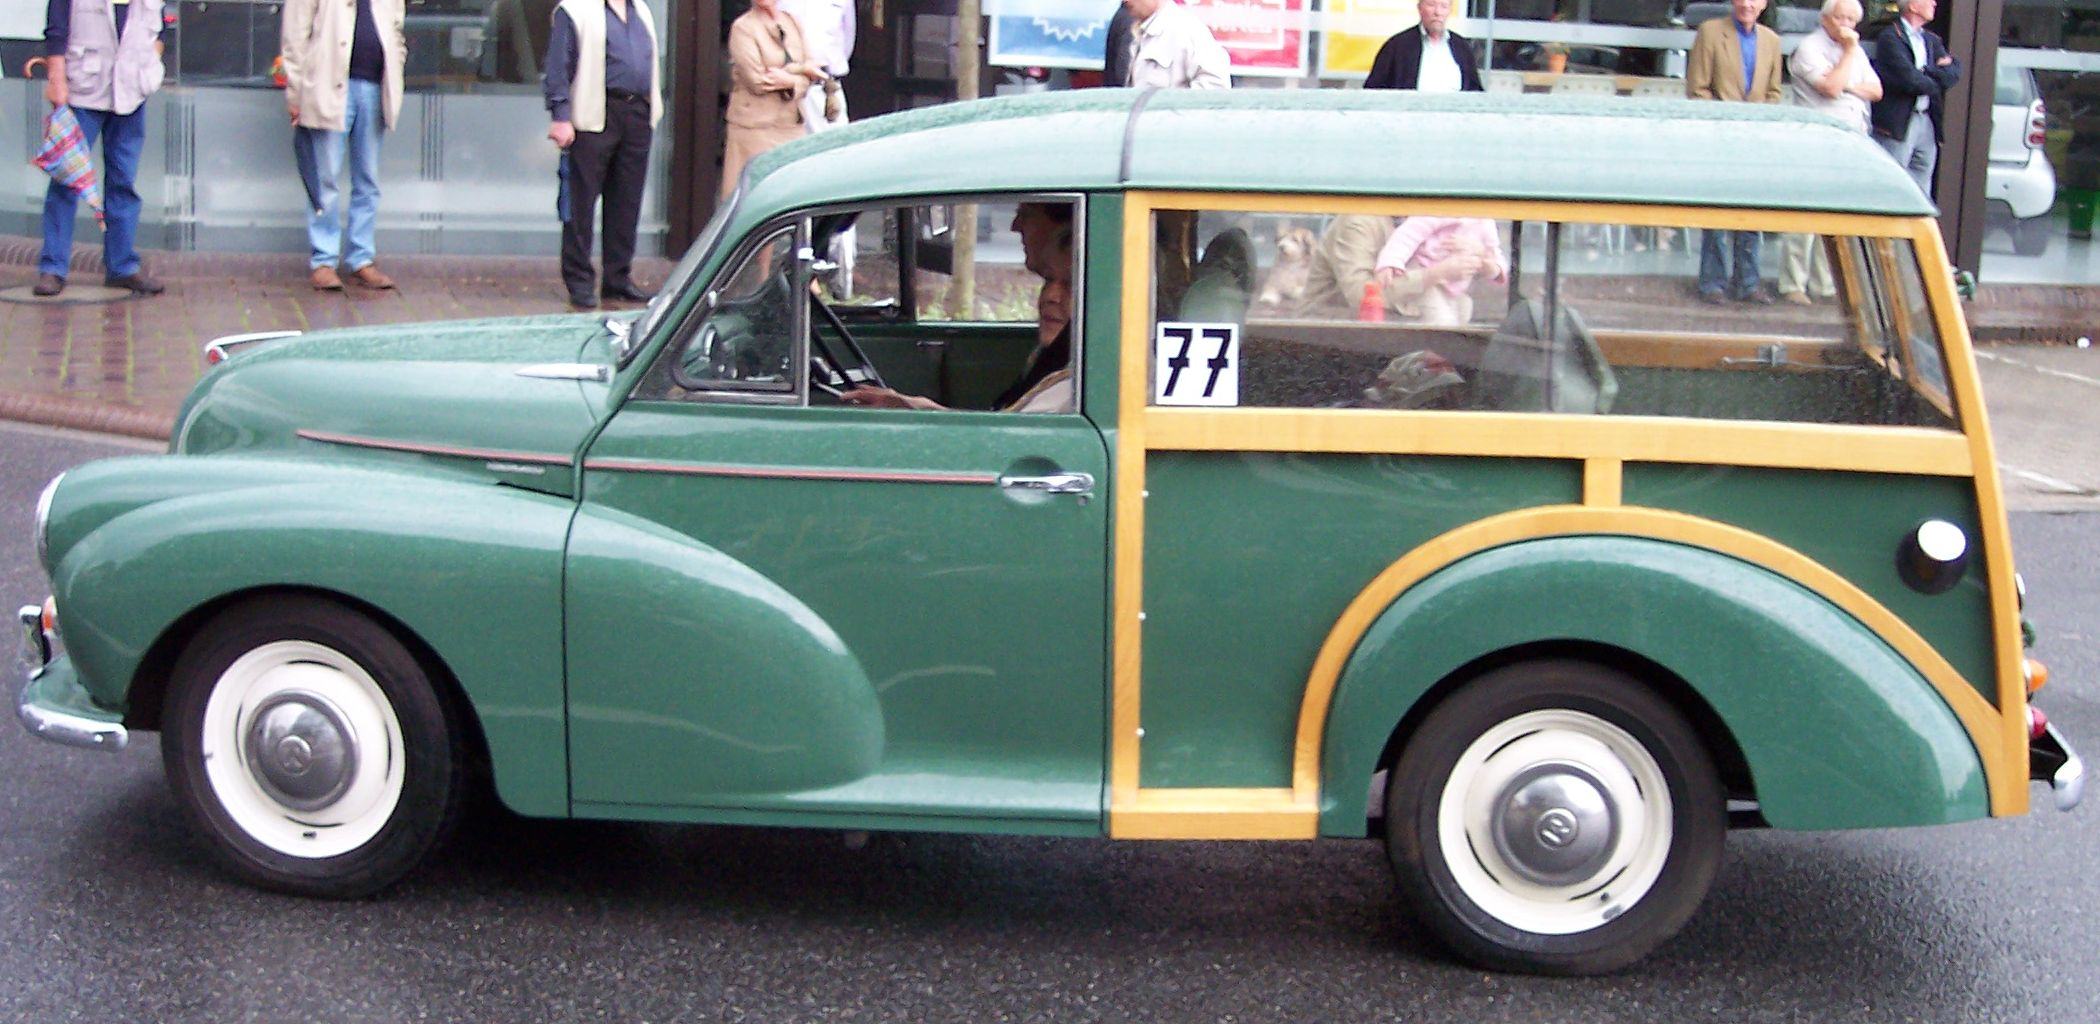 https://upload.wikimedia.org/wikipedia/commons/f/f6/Morris_Minor_1000_green_woody_l.jpg